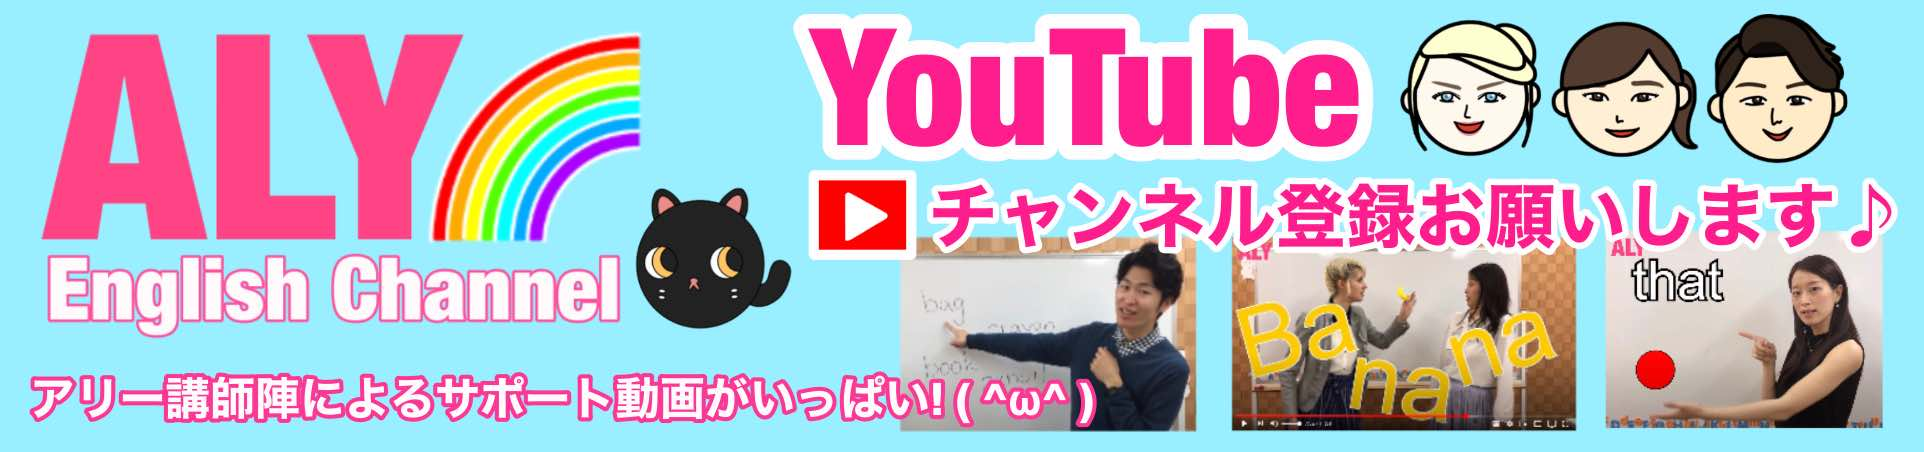 YouTube_channel_banner